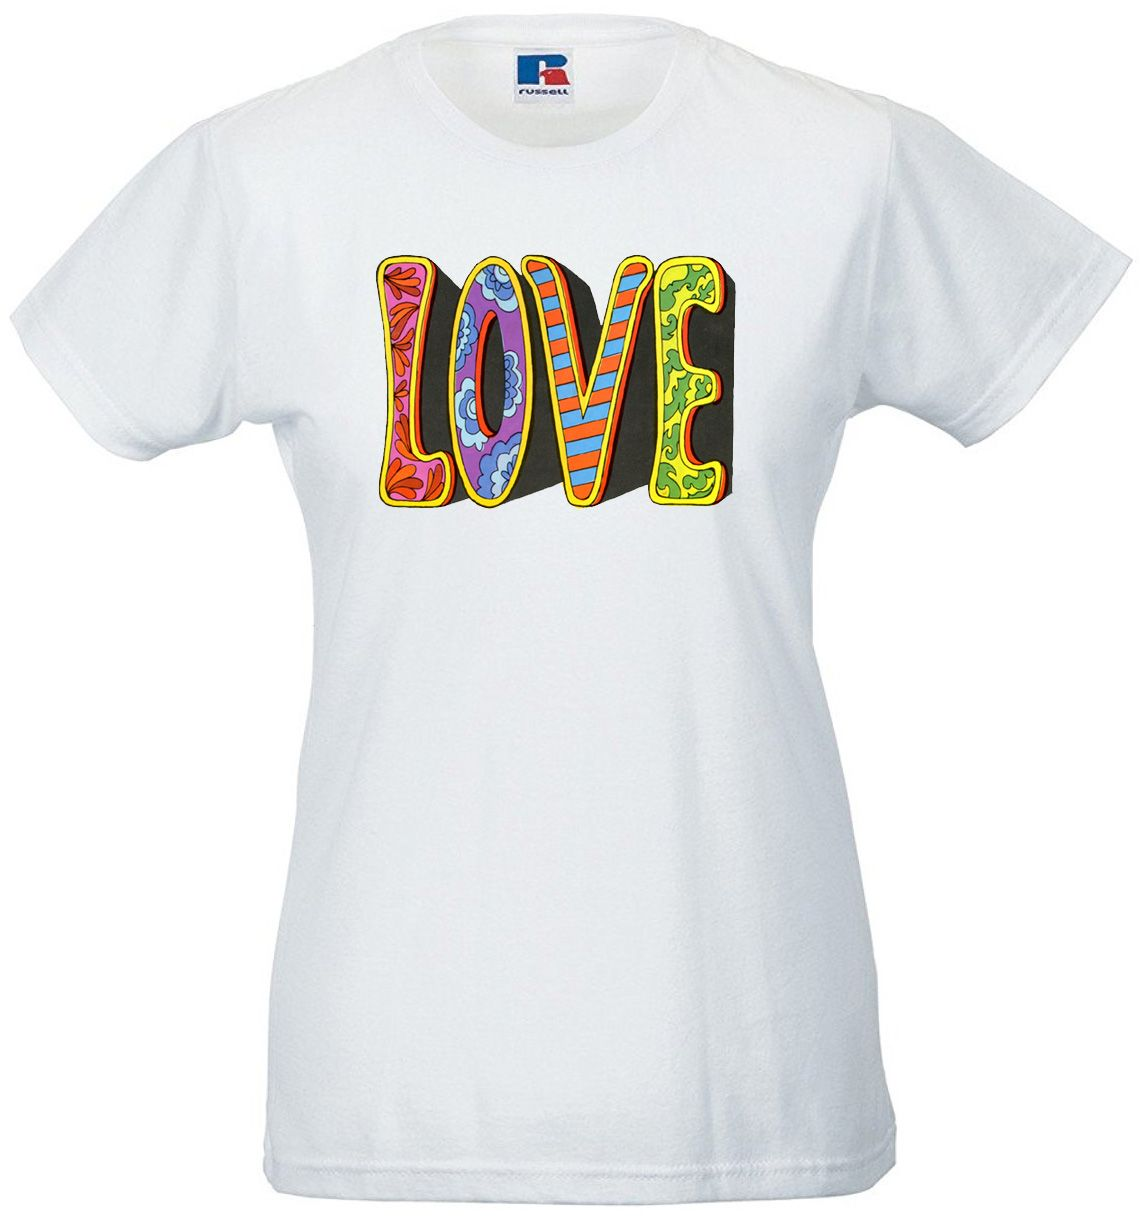 Sizes 60/'s Style Psychedelic Hippy Love Ladies Womens T-Shirt Ring Spun Cotton